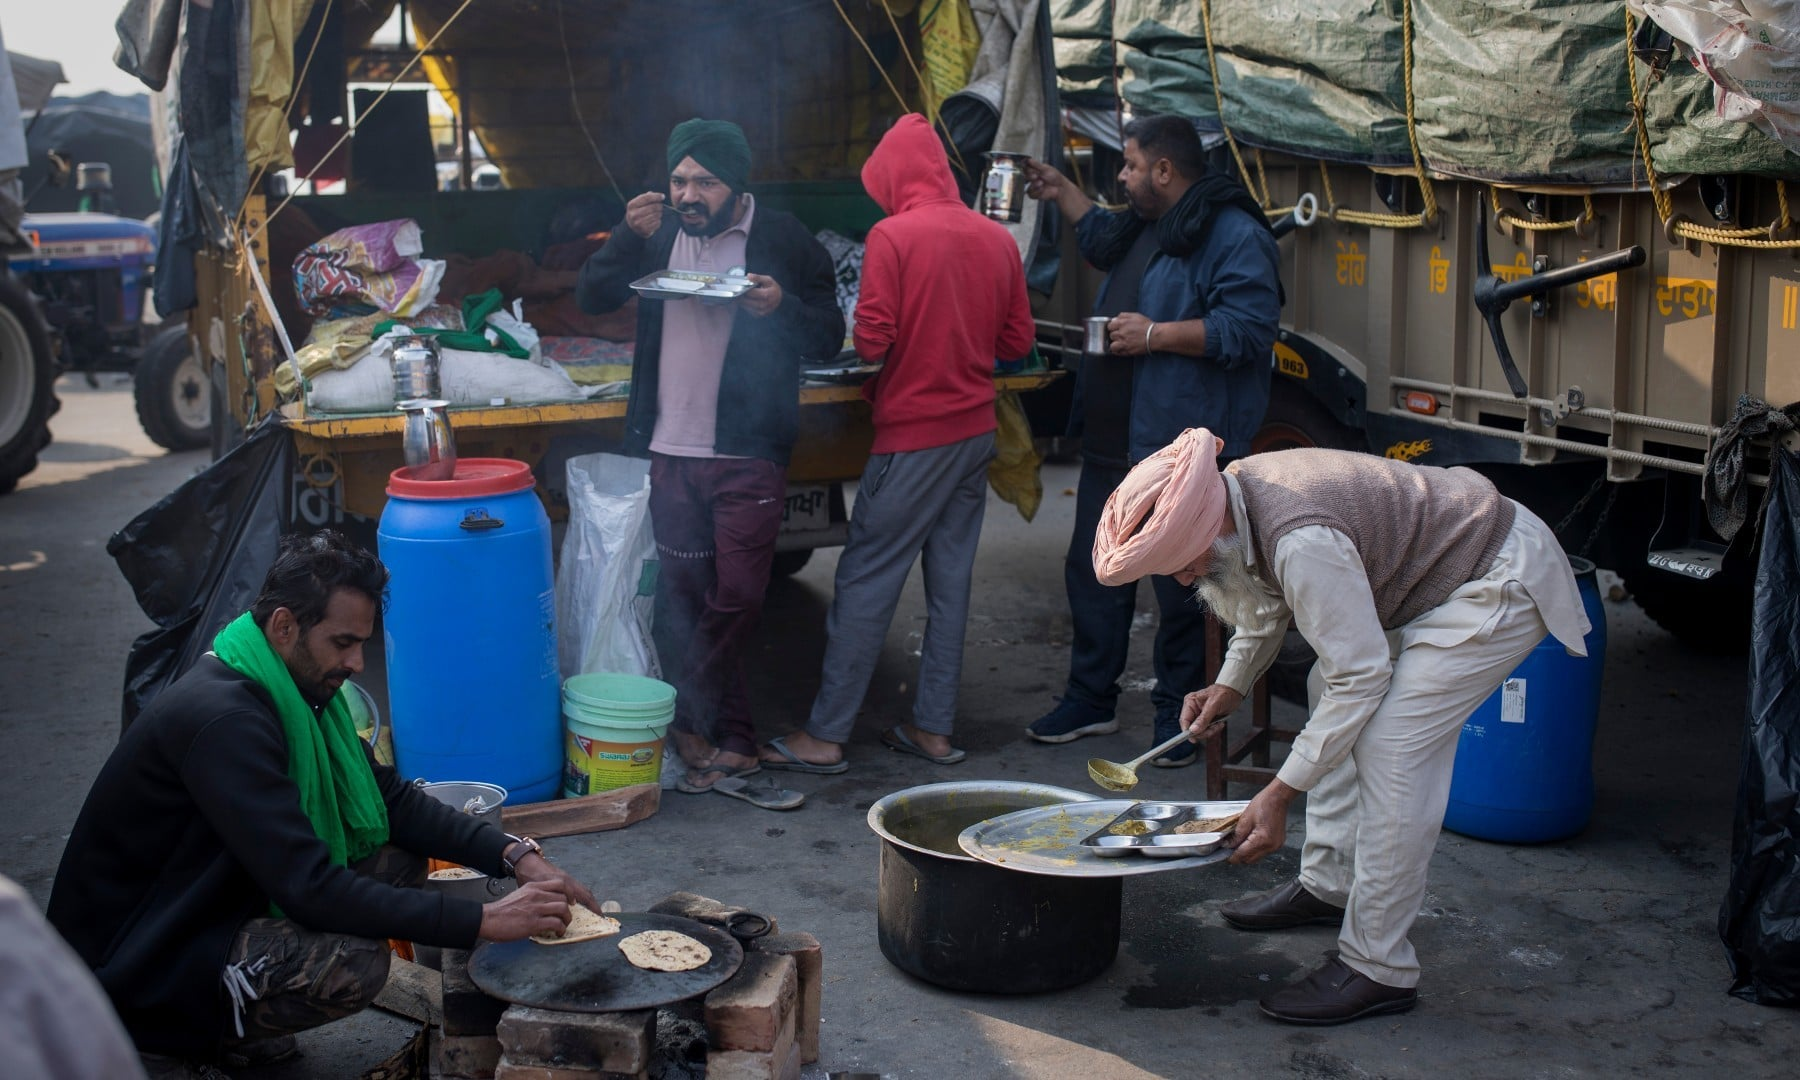 Protesting farmers eat breakfast outside their vehicles as they block a major highway during a protest at the Delhi-Haryana state border on Dec 1. — AP